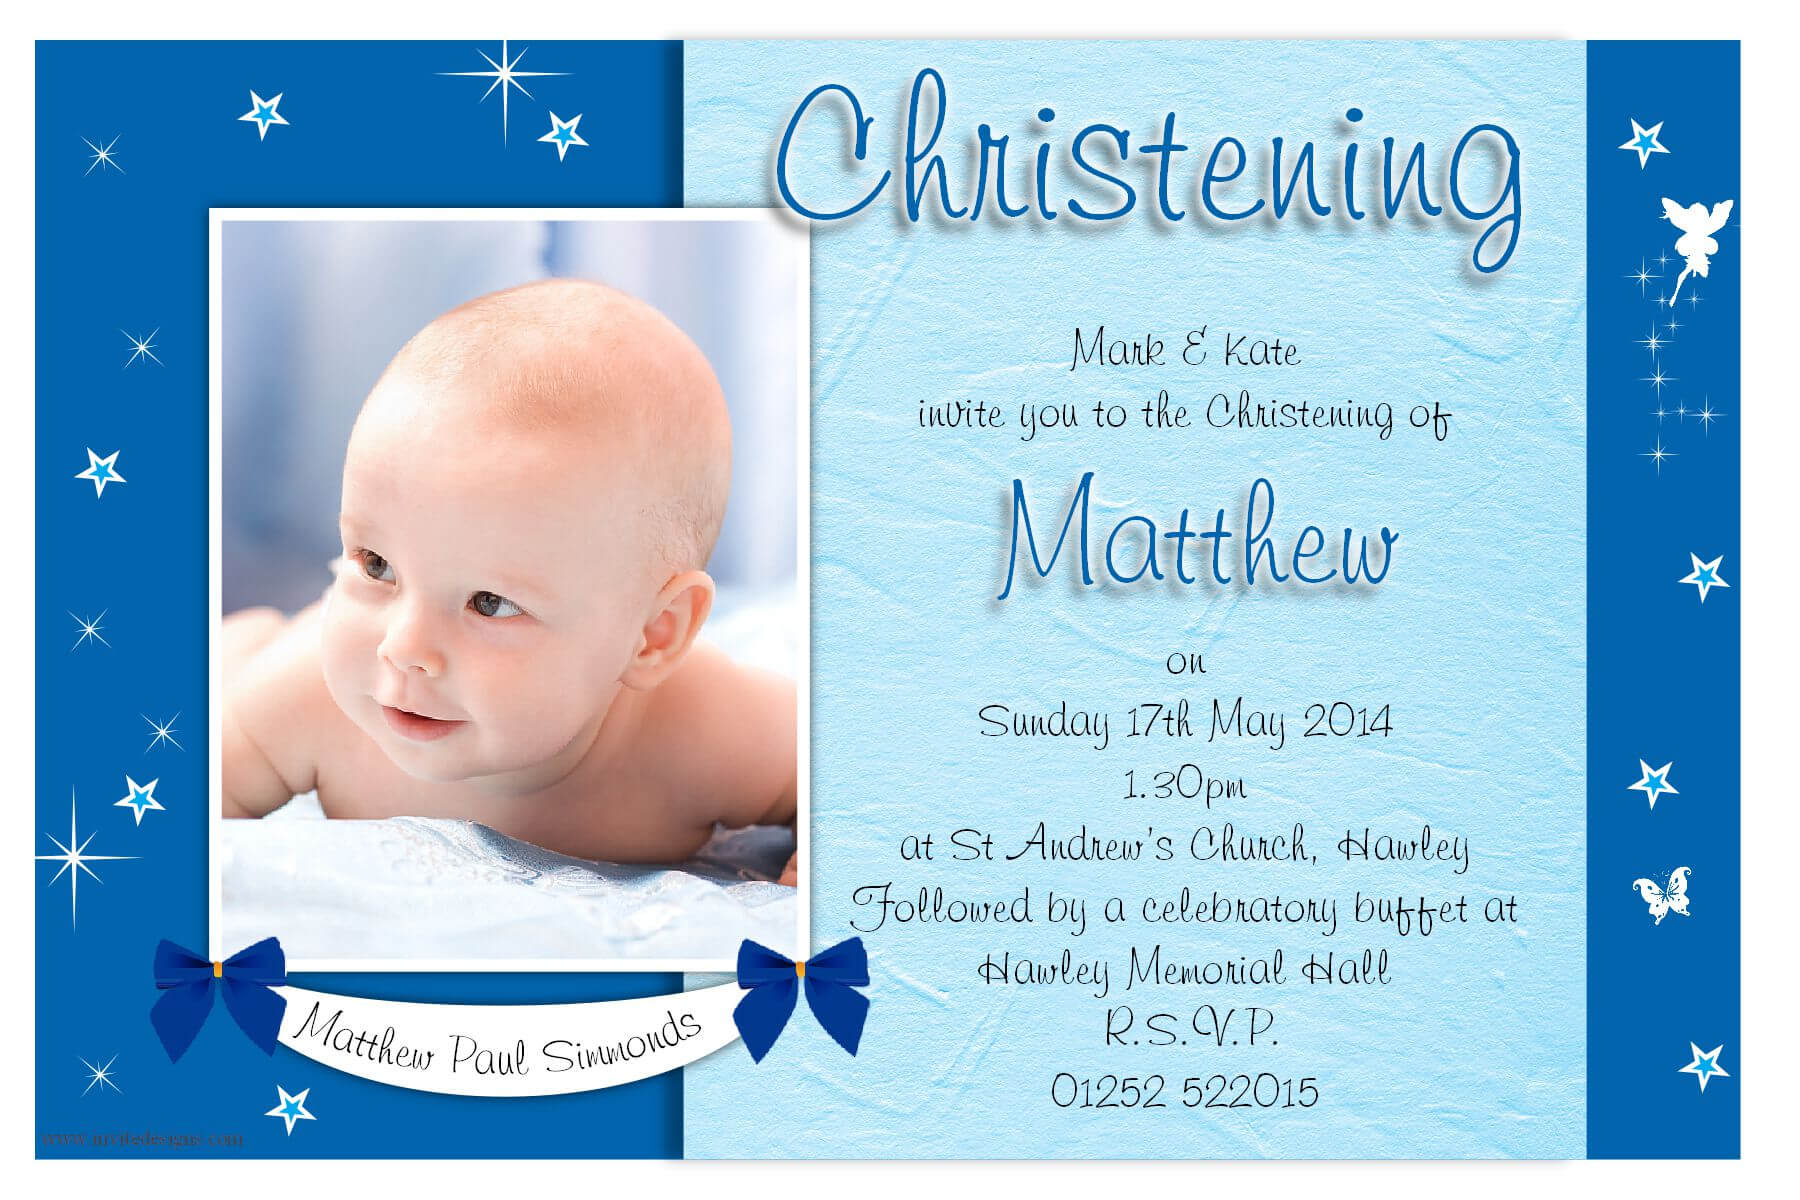 Christening Invitation Cards : Christening Invitation Cards Intended For Baptism Invitation Card Template